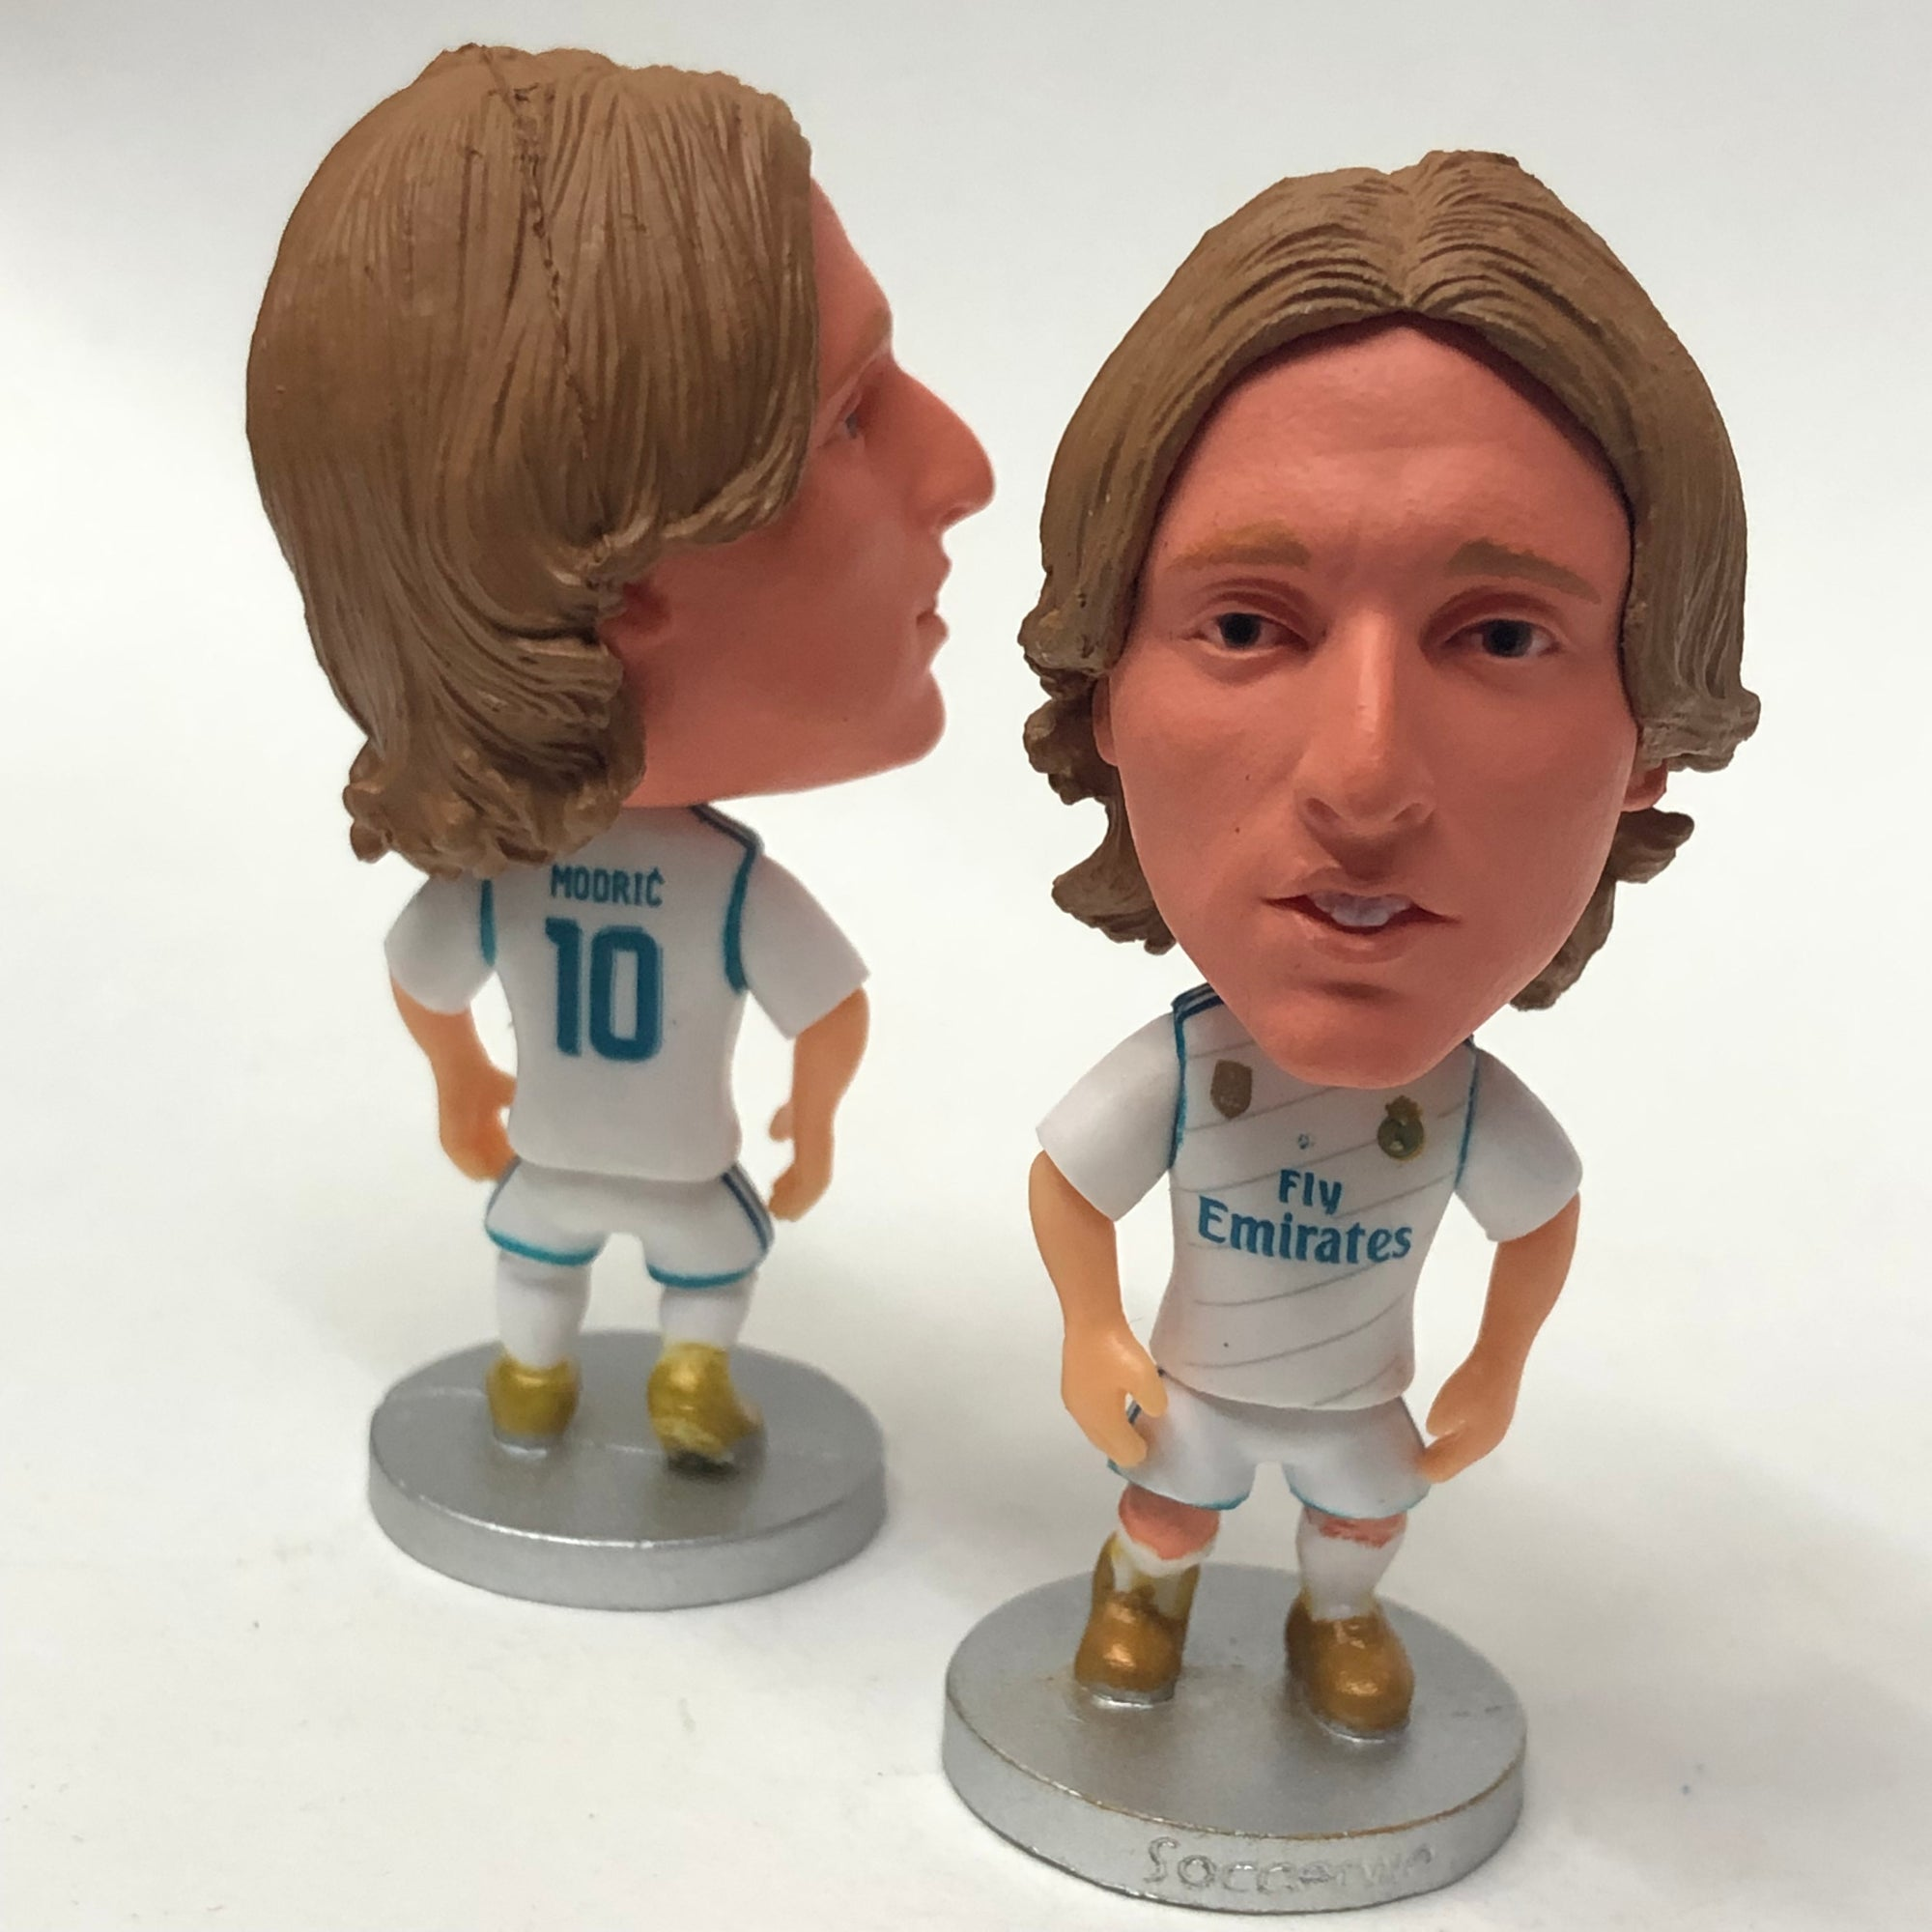 Modric Real Madrid Figurine